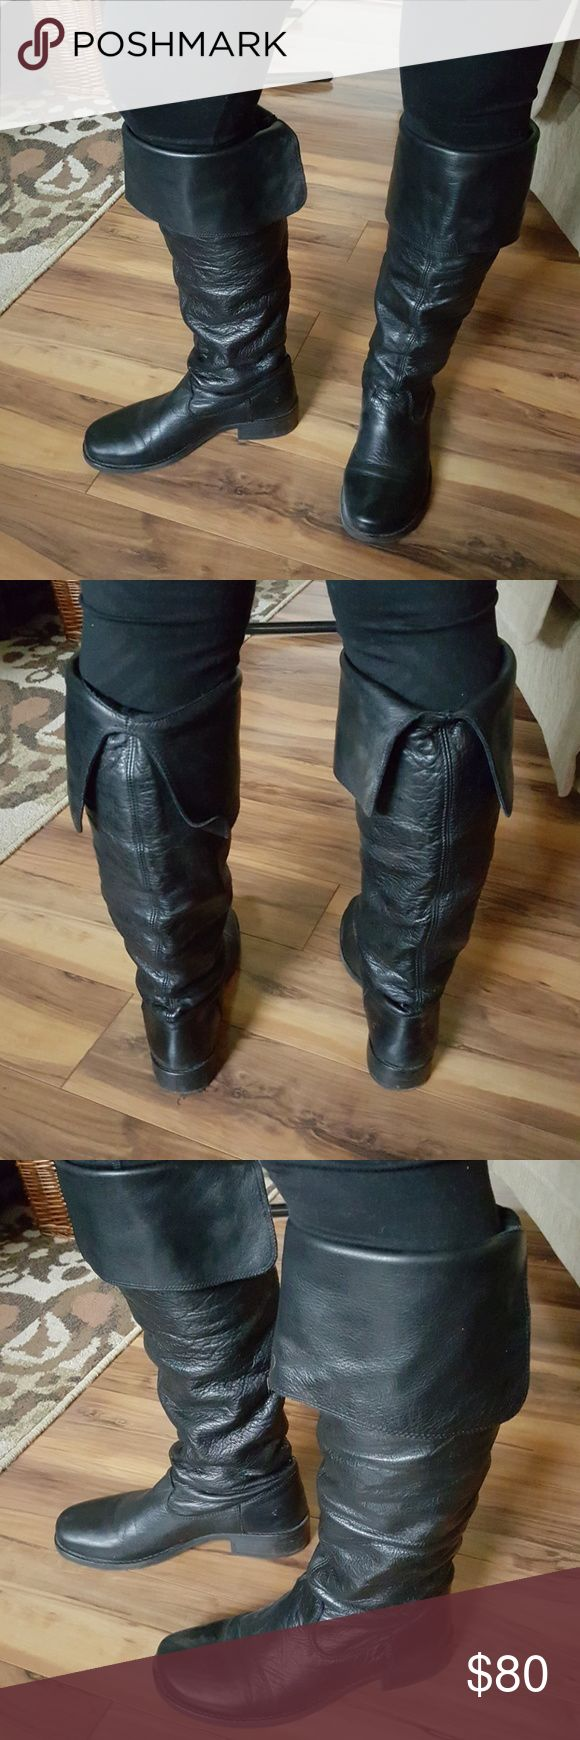 EUC- Black Leather Kneehigh Boots EUC- Black Leather Kneehigh Boots. Folder-over styling at top of boot,  can be unfolded and worn over the knee.  Very soft supple leather.  Pull on styling,  only  worn a couple of times.  Purchased in Denmark, too hot for Florida, though perfect buccaneer boots! 1 1/4 inch heel. Shaft length 13.5 inches,  widest shaft width 14 inches. Vilbar Shoes Over the Knee Boots